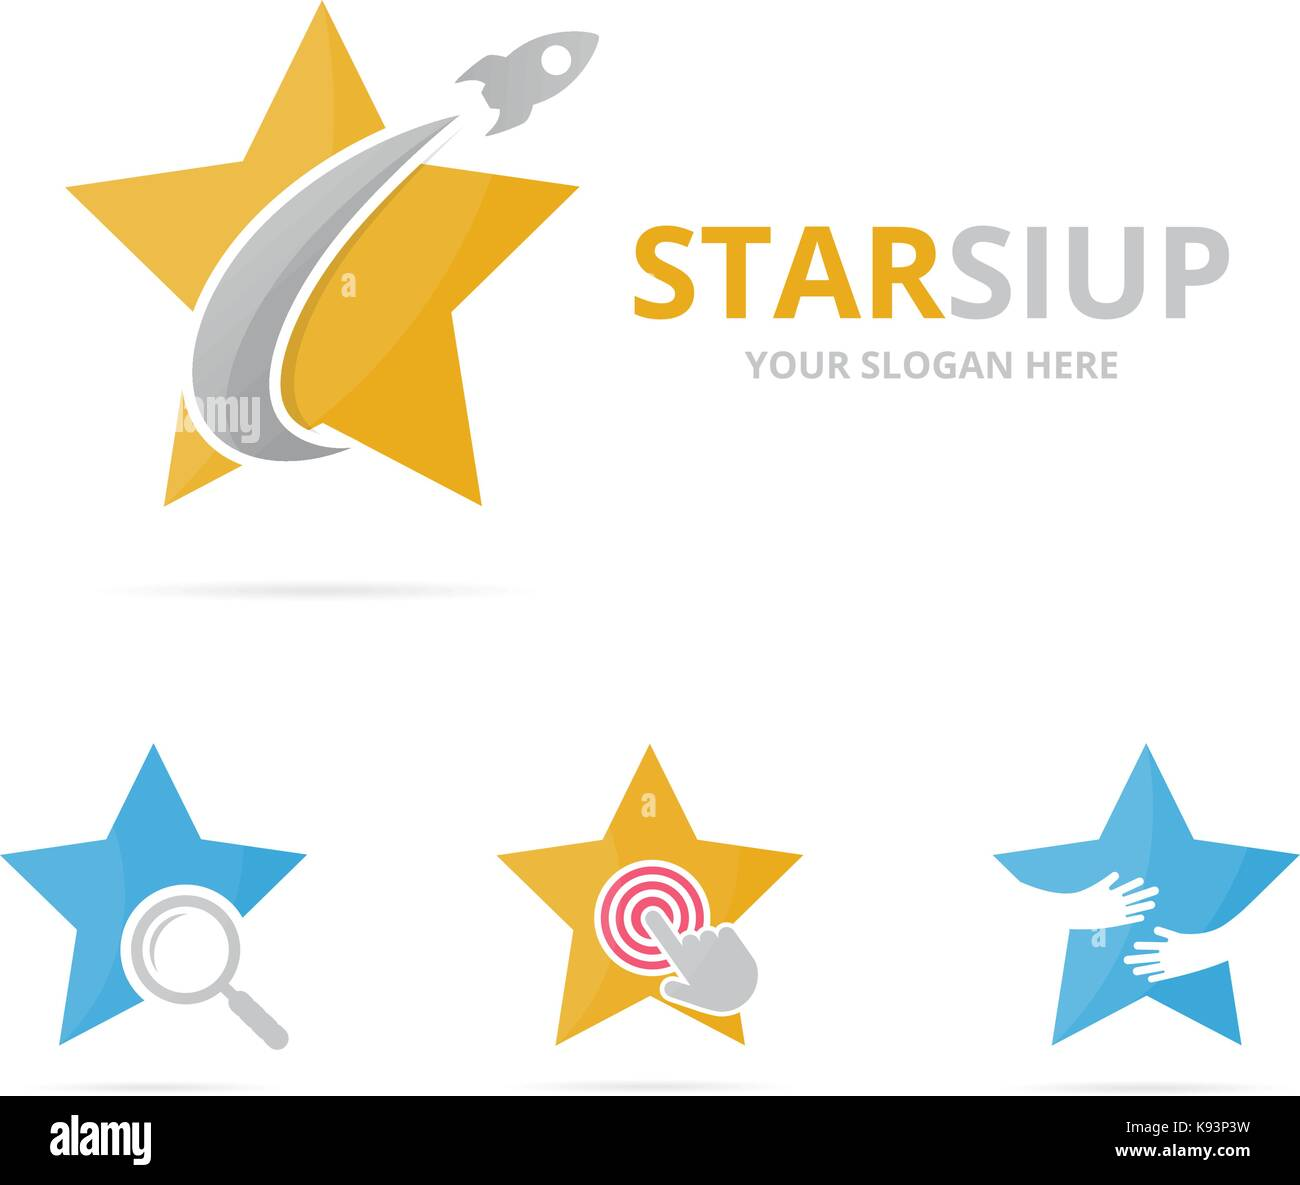 Set of star logo combination. Leader and airplane symbol or icon. Unique flight and team logotype design template. - Stock Vector